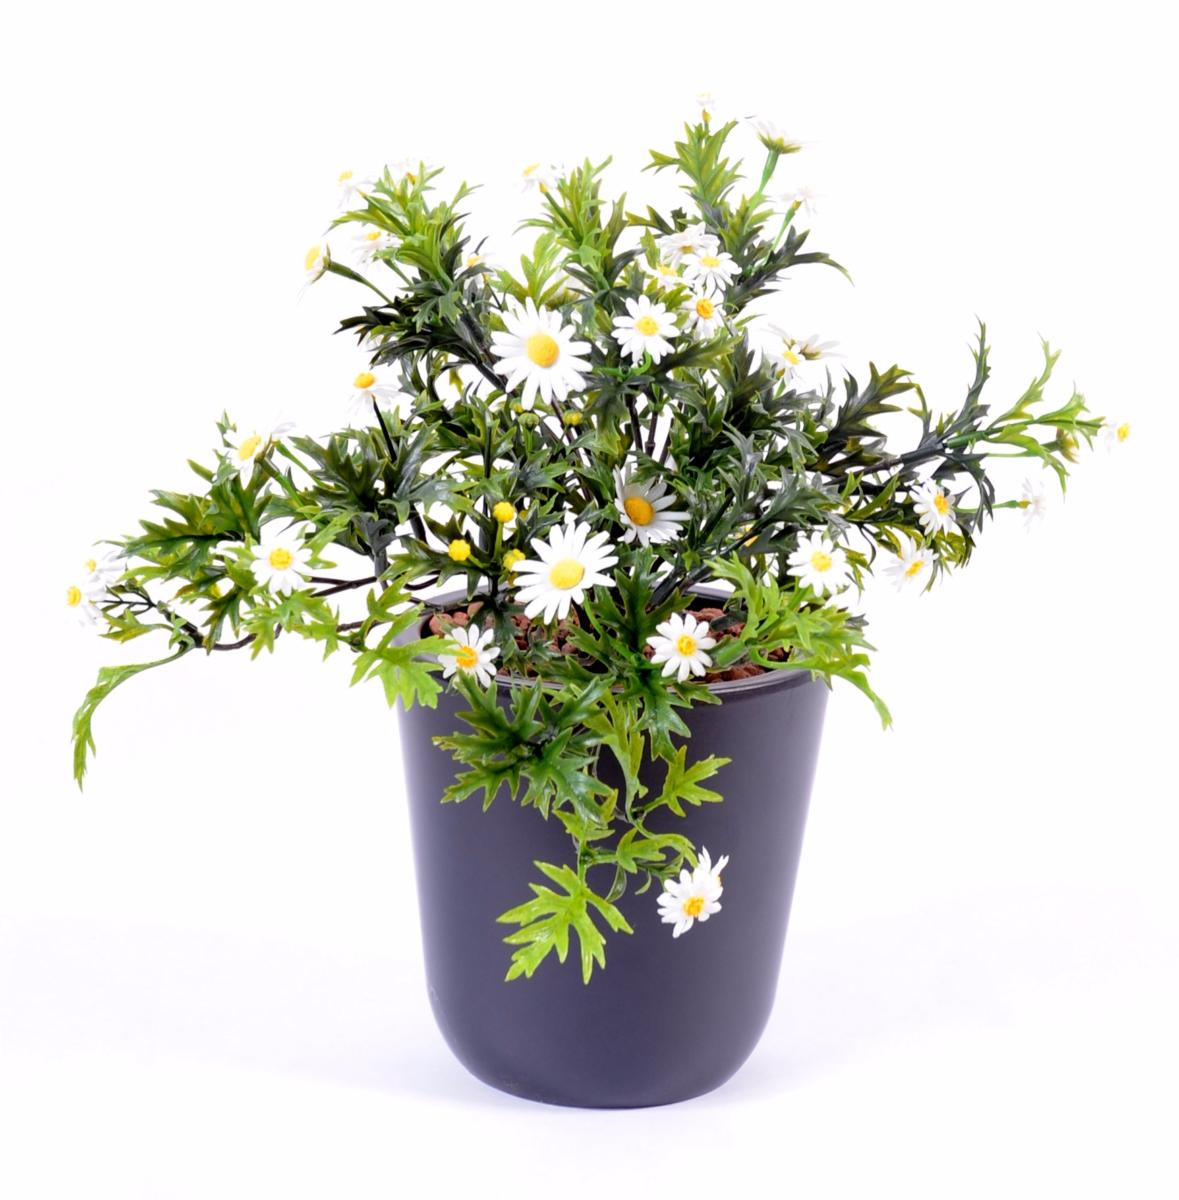 Plante artificielle marguerite en piquet plastique for Plantes fleuries exterieur en pot